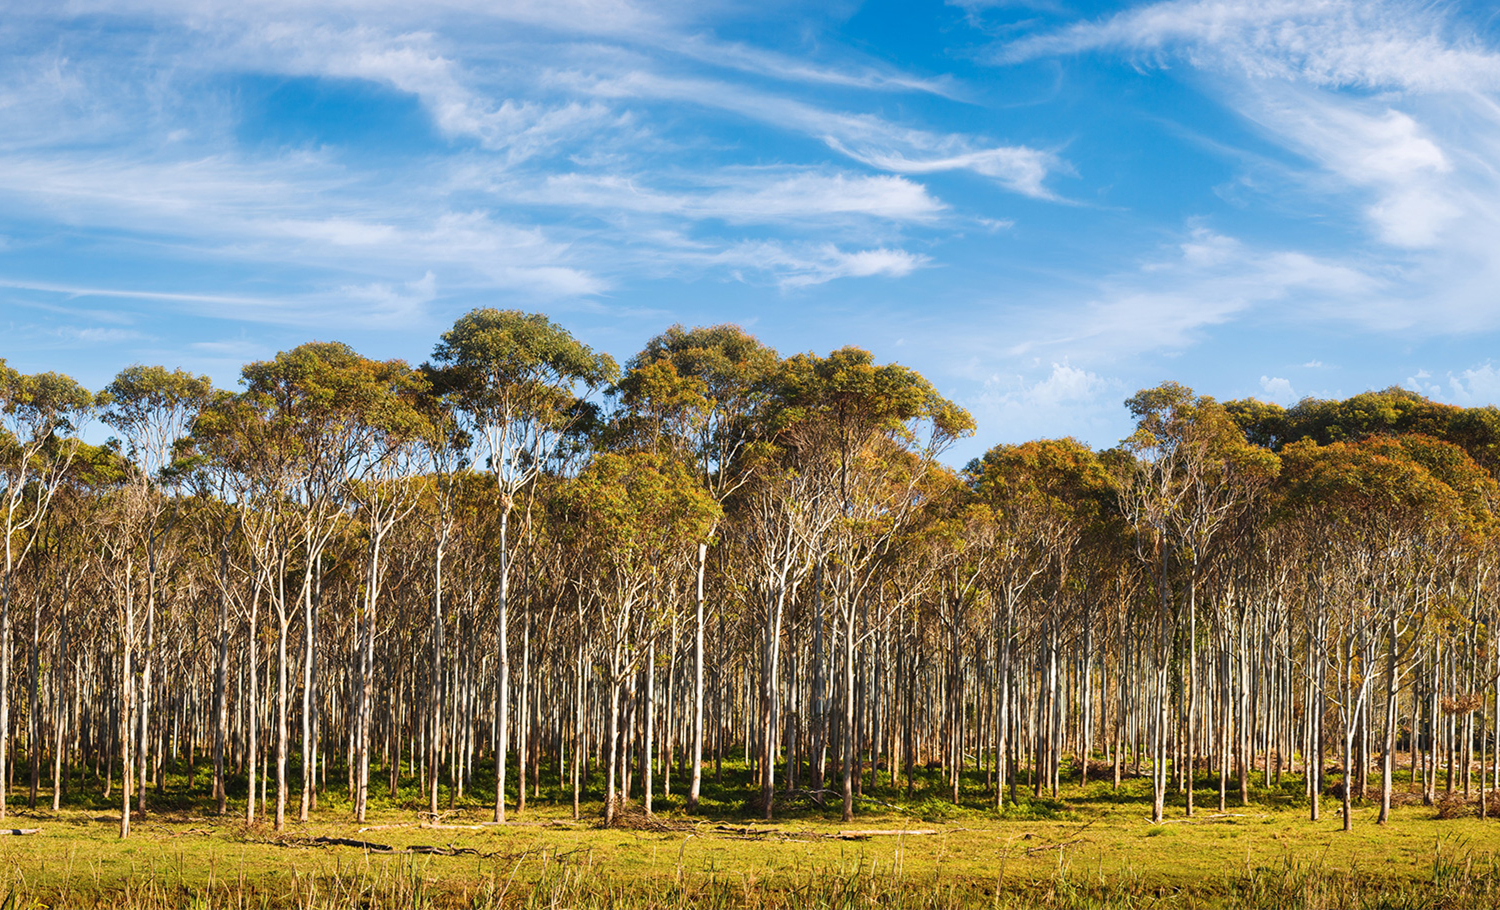 Eucalyptus Vs. Cotton – Why Eucalyptus is the Fabric of the Future?